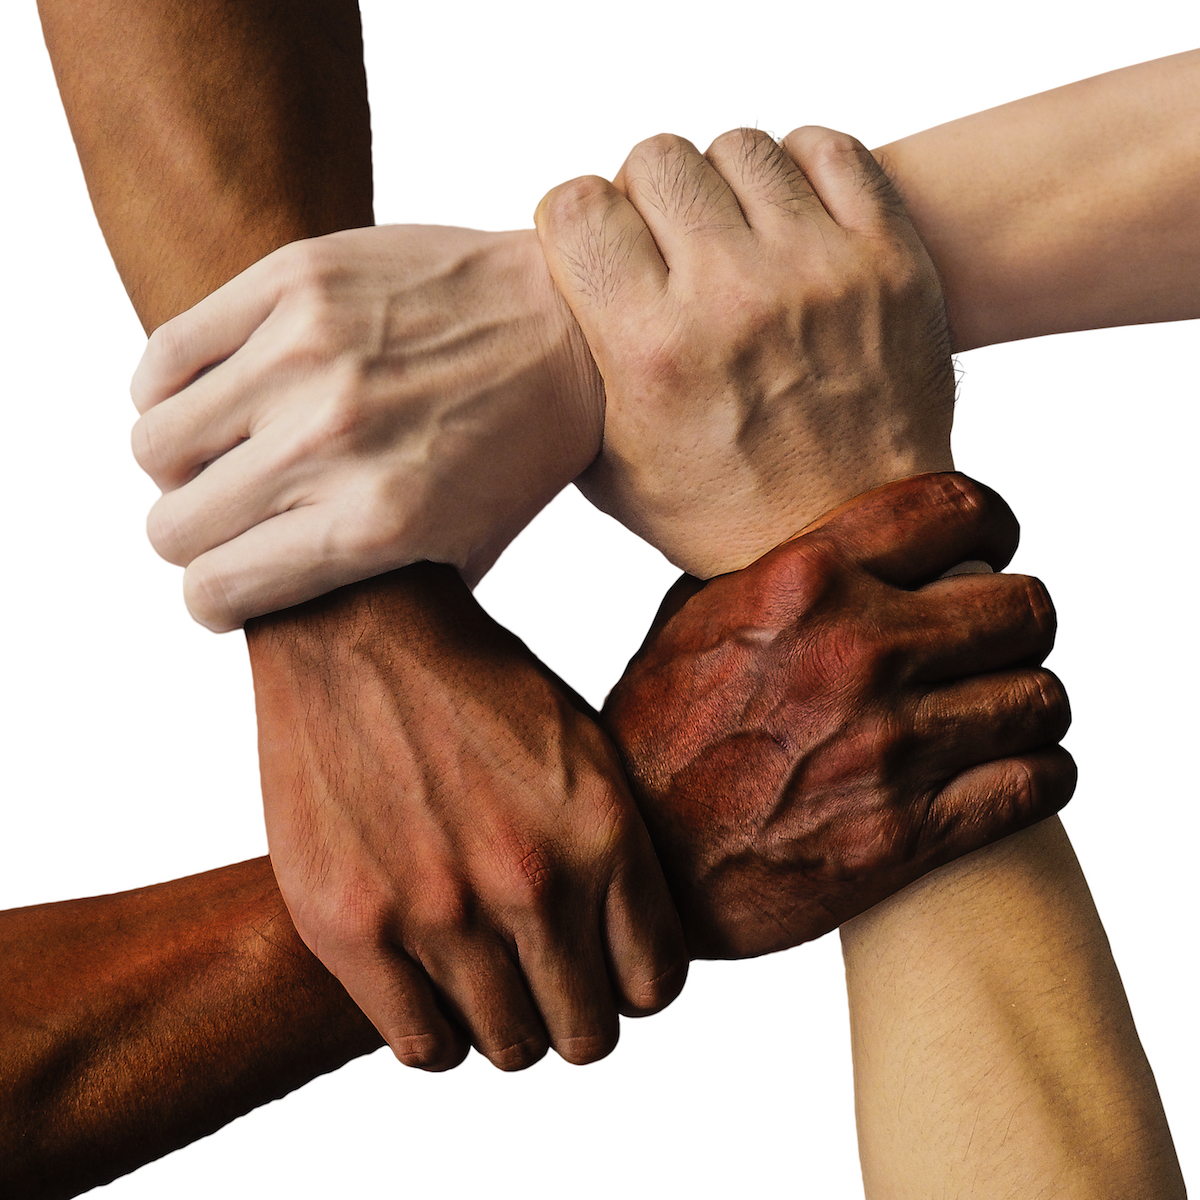 Resources For Ministry On Racism